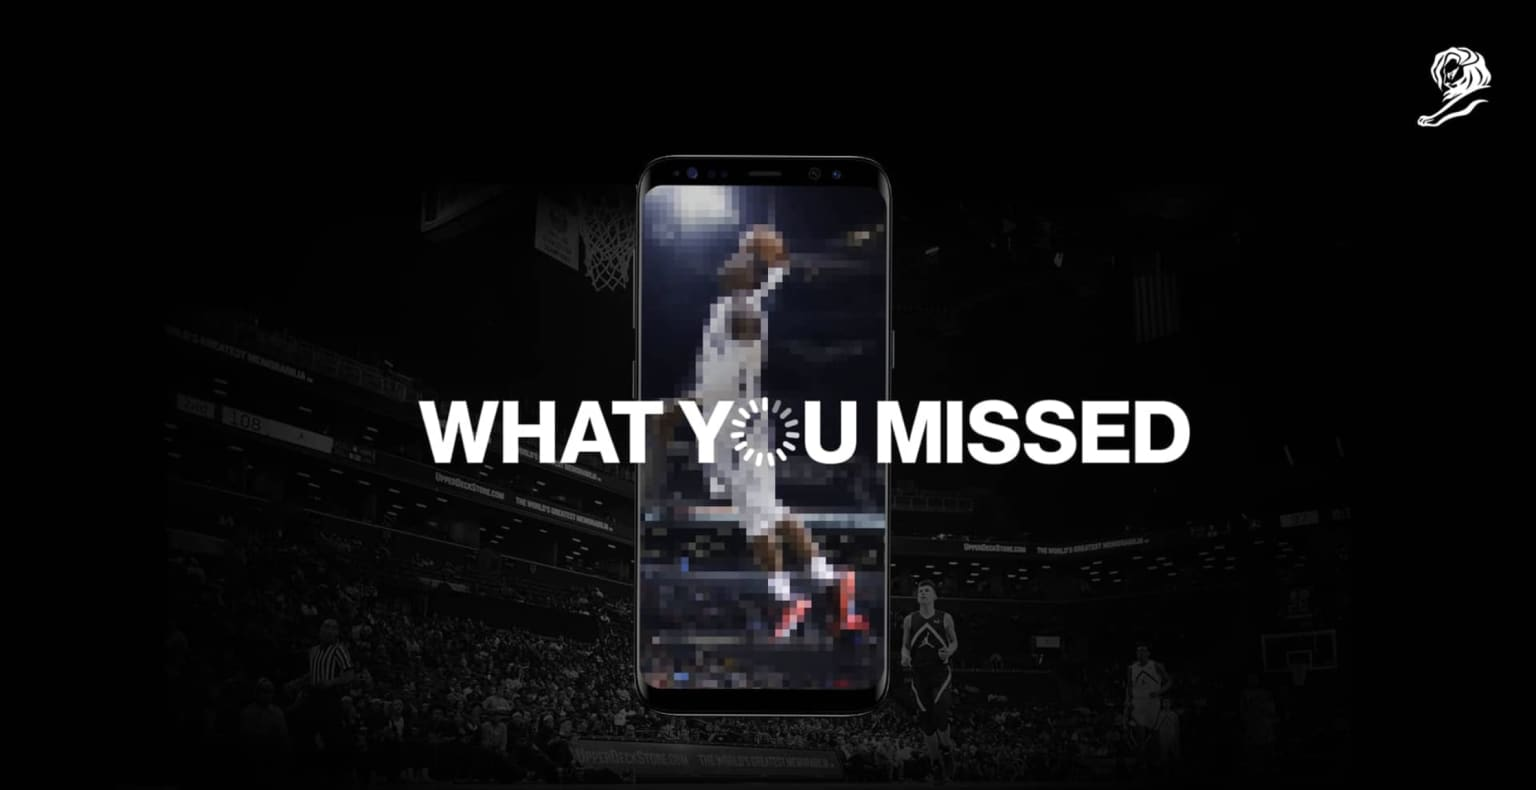 Verizon - What You Missed